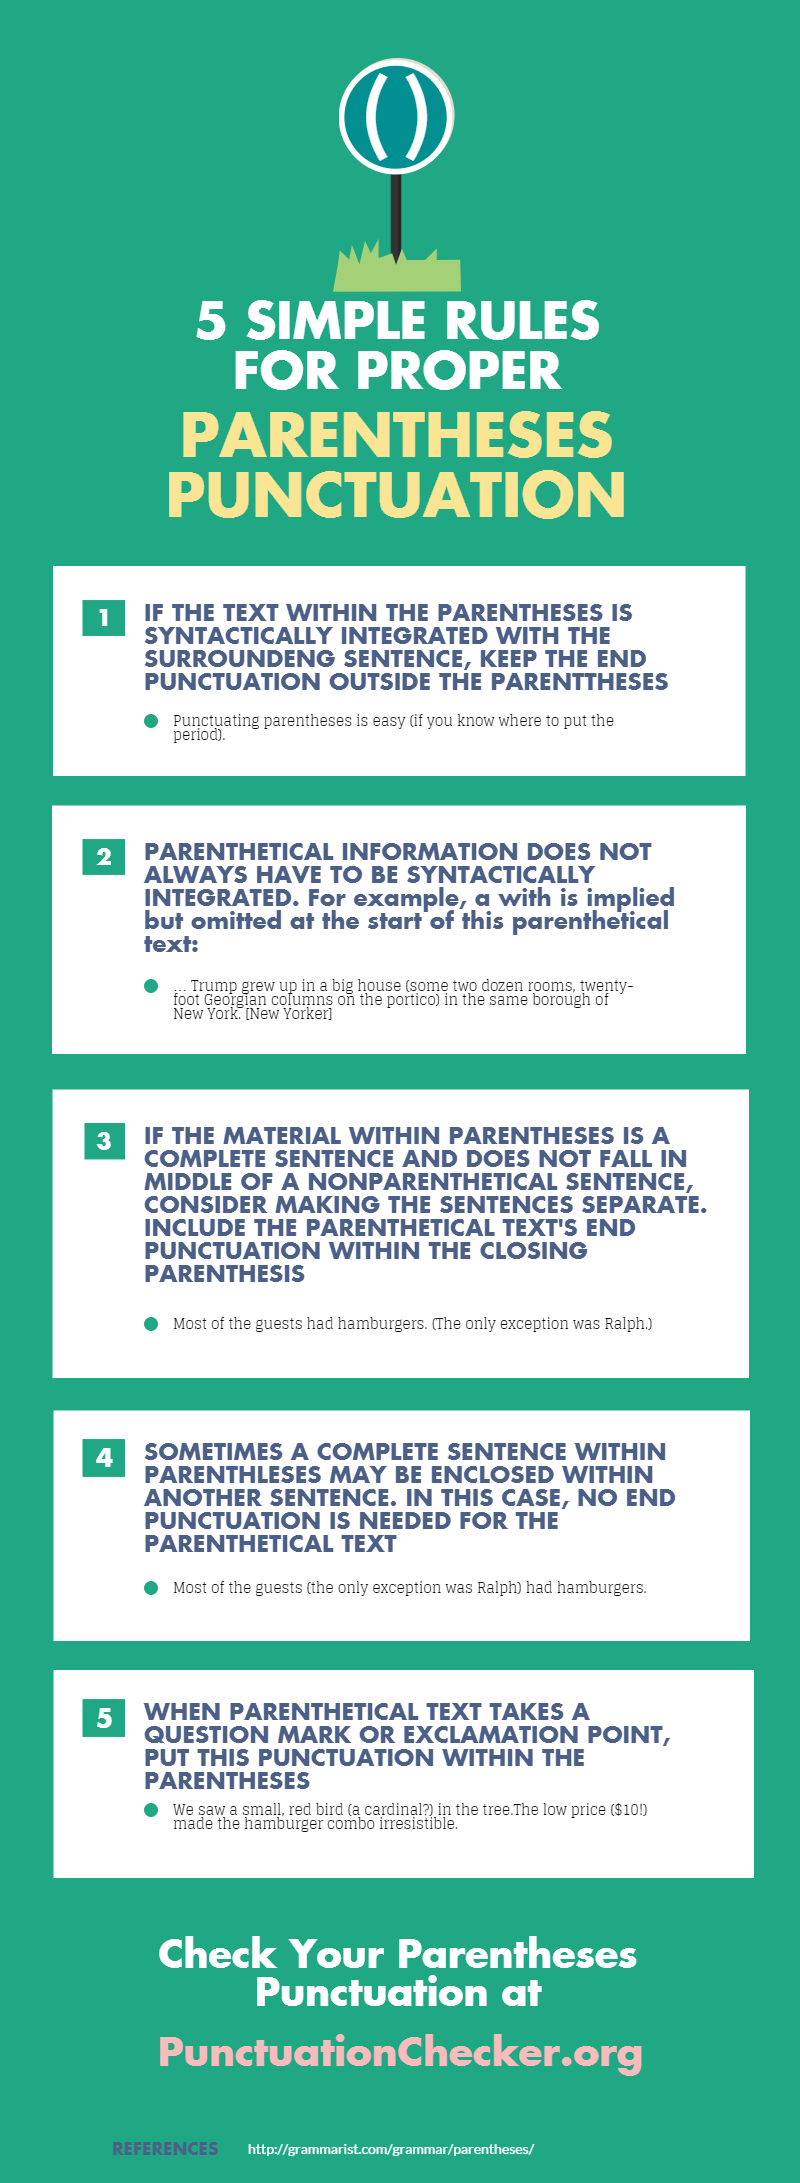 5 simple rules for proper parentheses punctuation